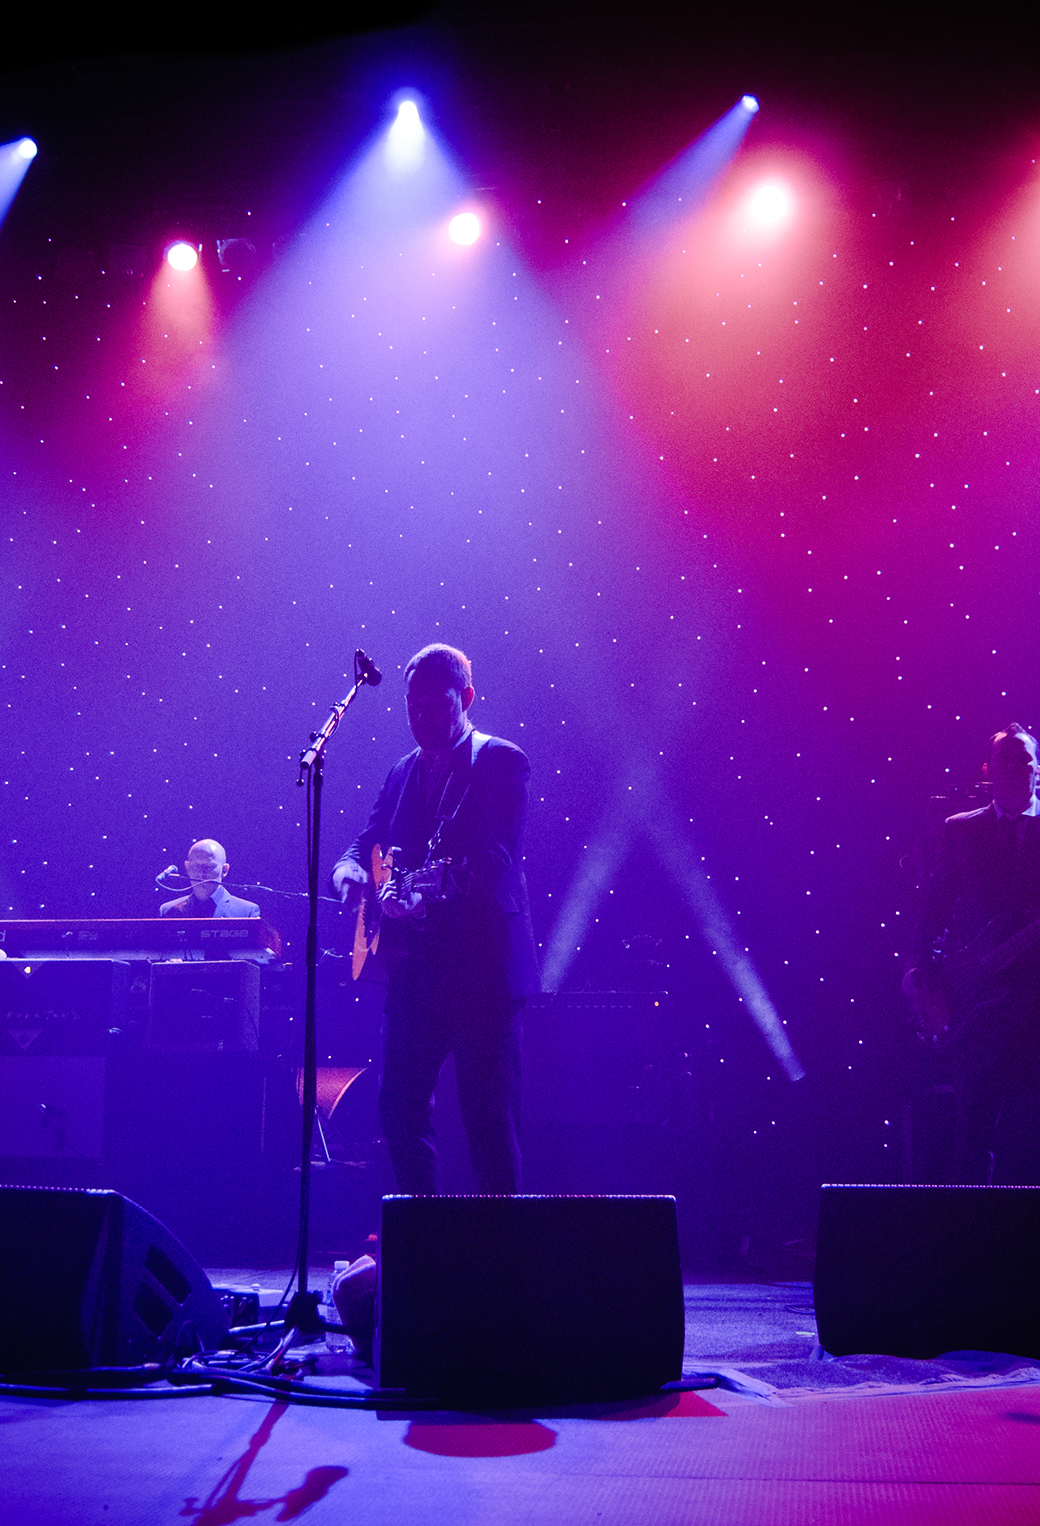 Live Wallpaper Iphone 4s Free David Gray Concert Live Wallpaper For Iphone X 8 7 6